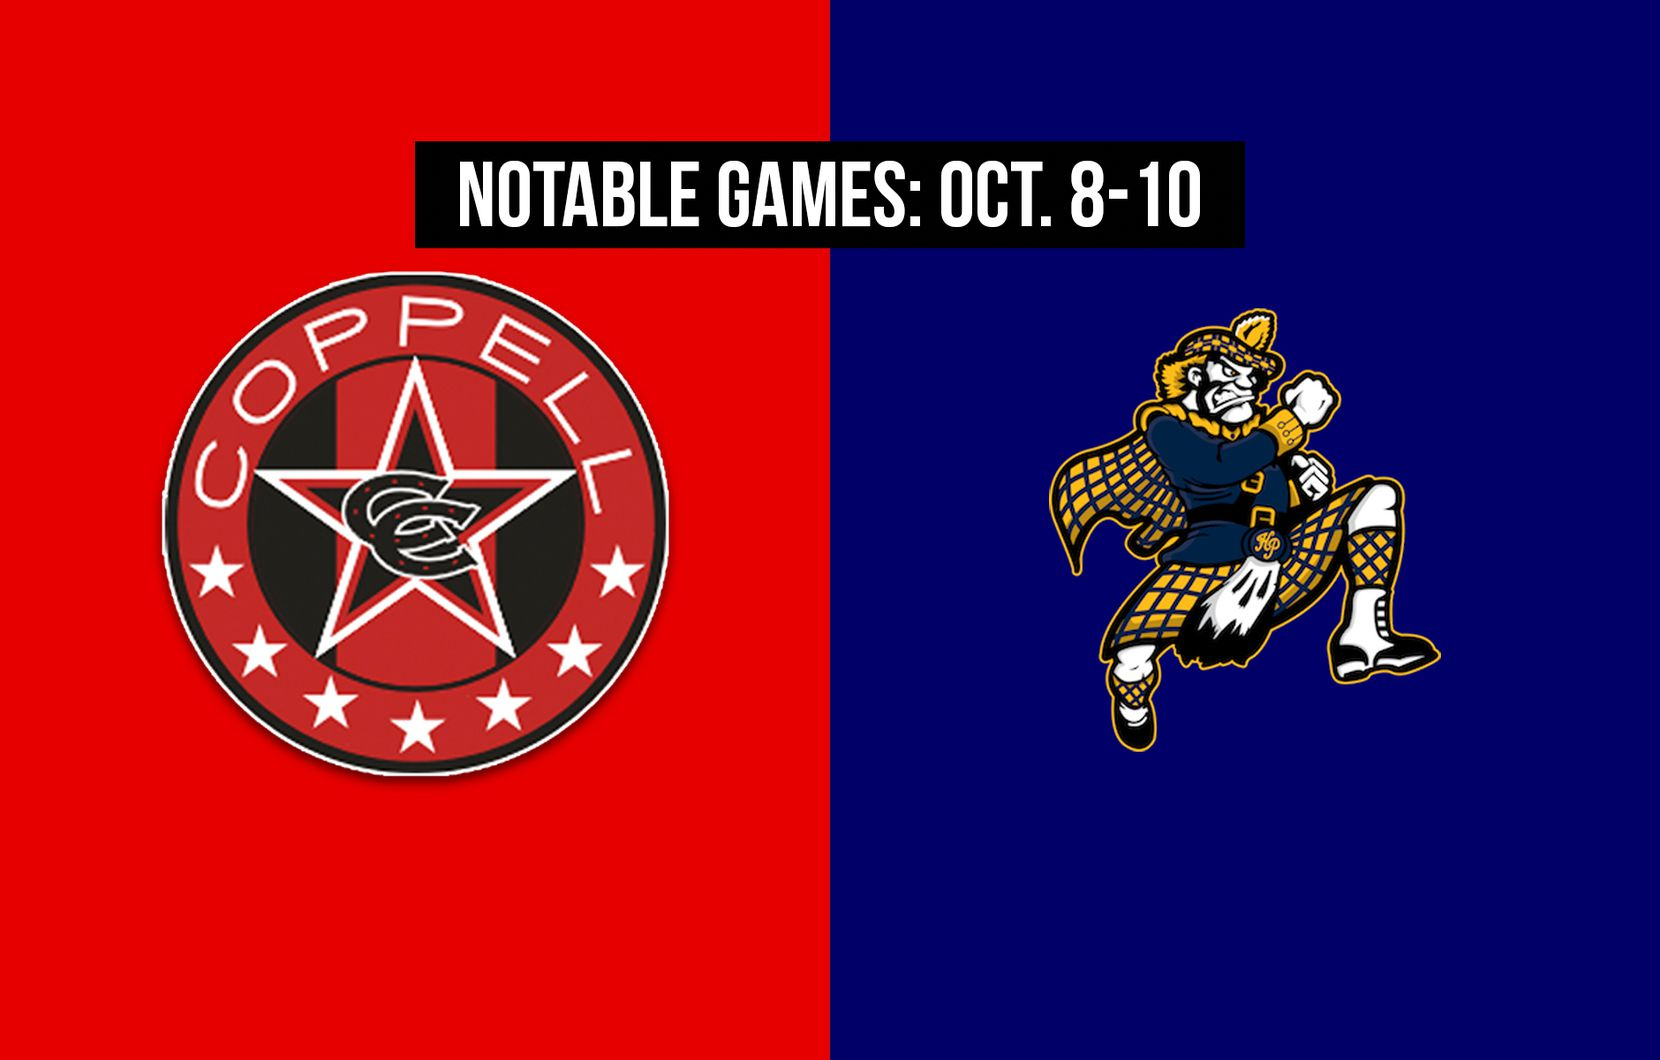 Notable games for the week of Oct. 8-10 of the 2020 season: Coppell vs. Highland Park.